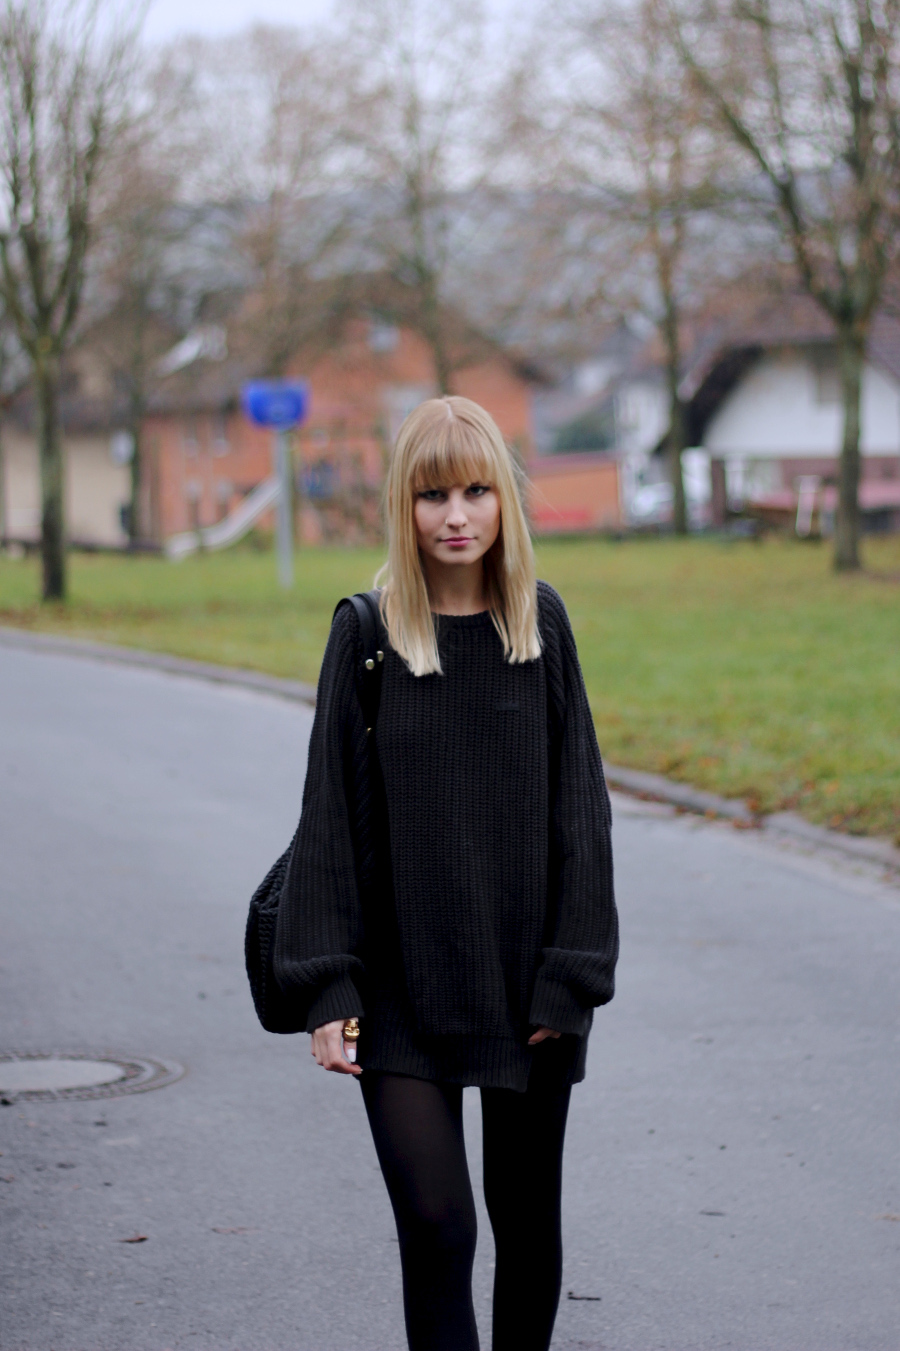 outfit-detail-girl-blond-fringe-pullover-skinny-legs-cute